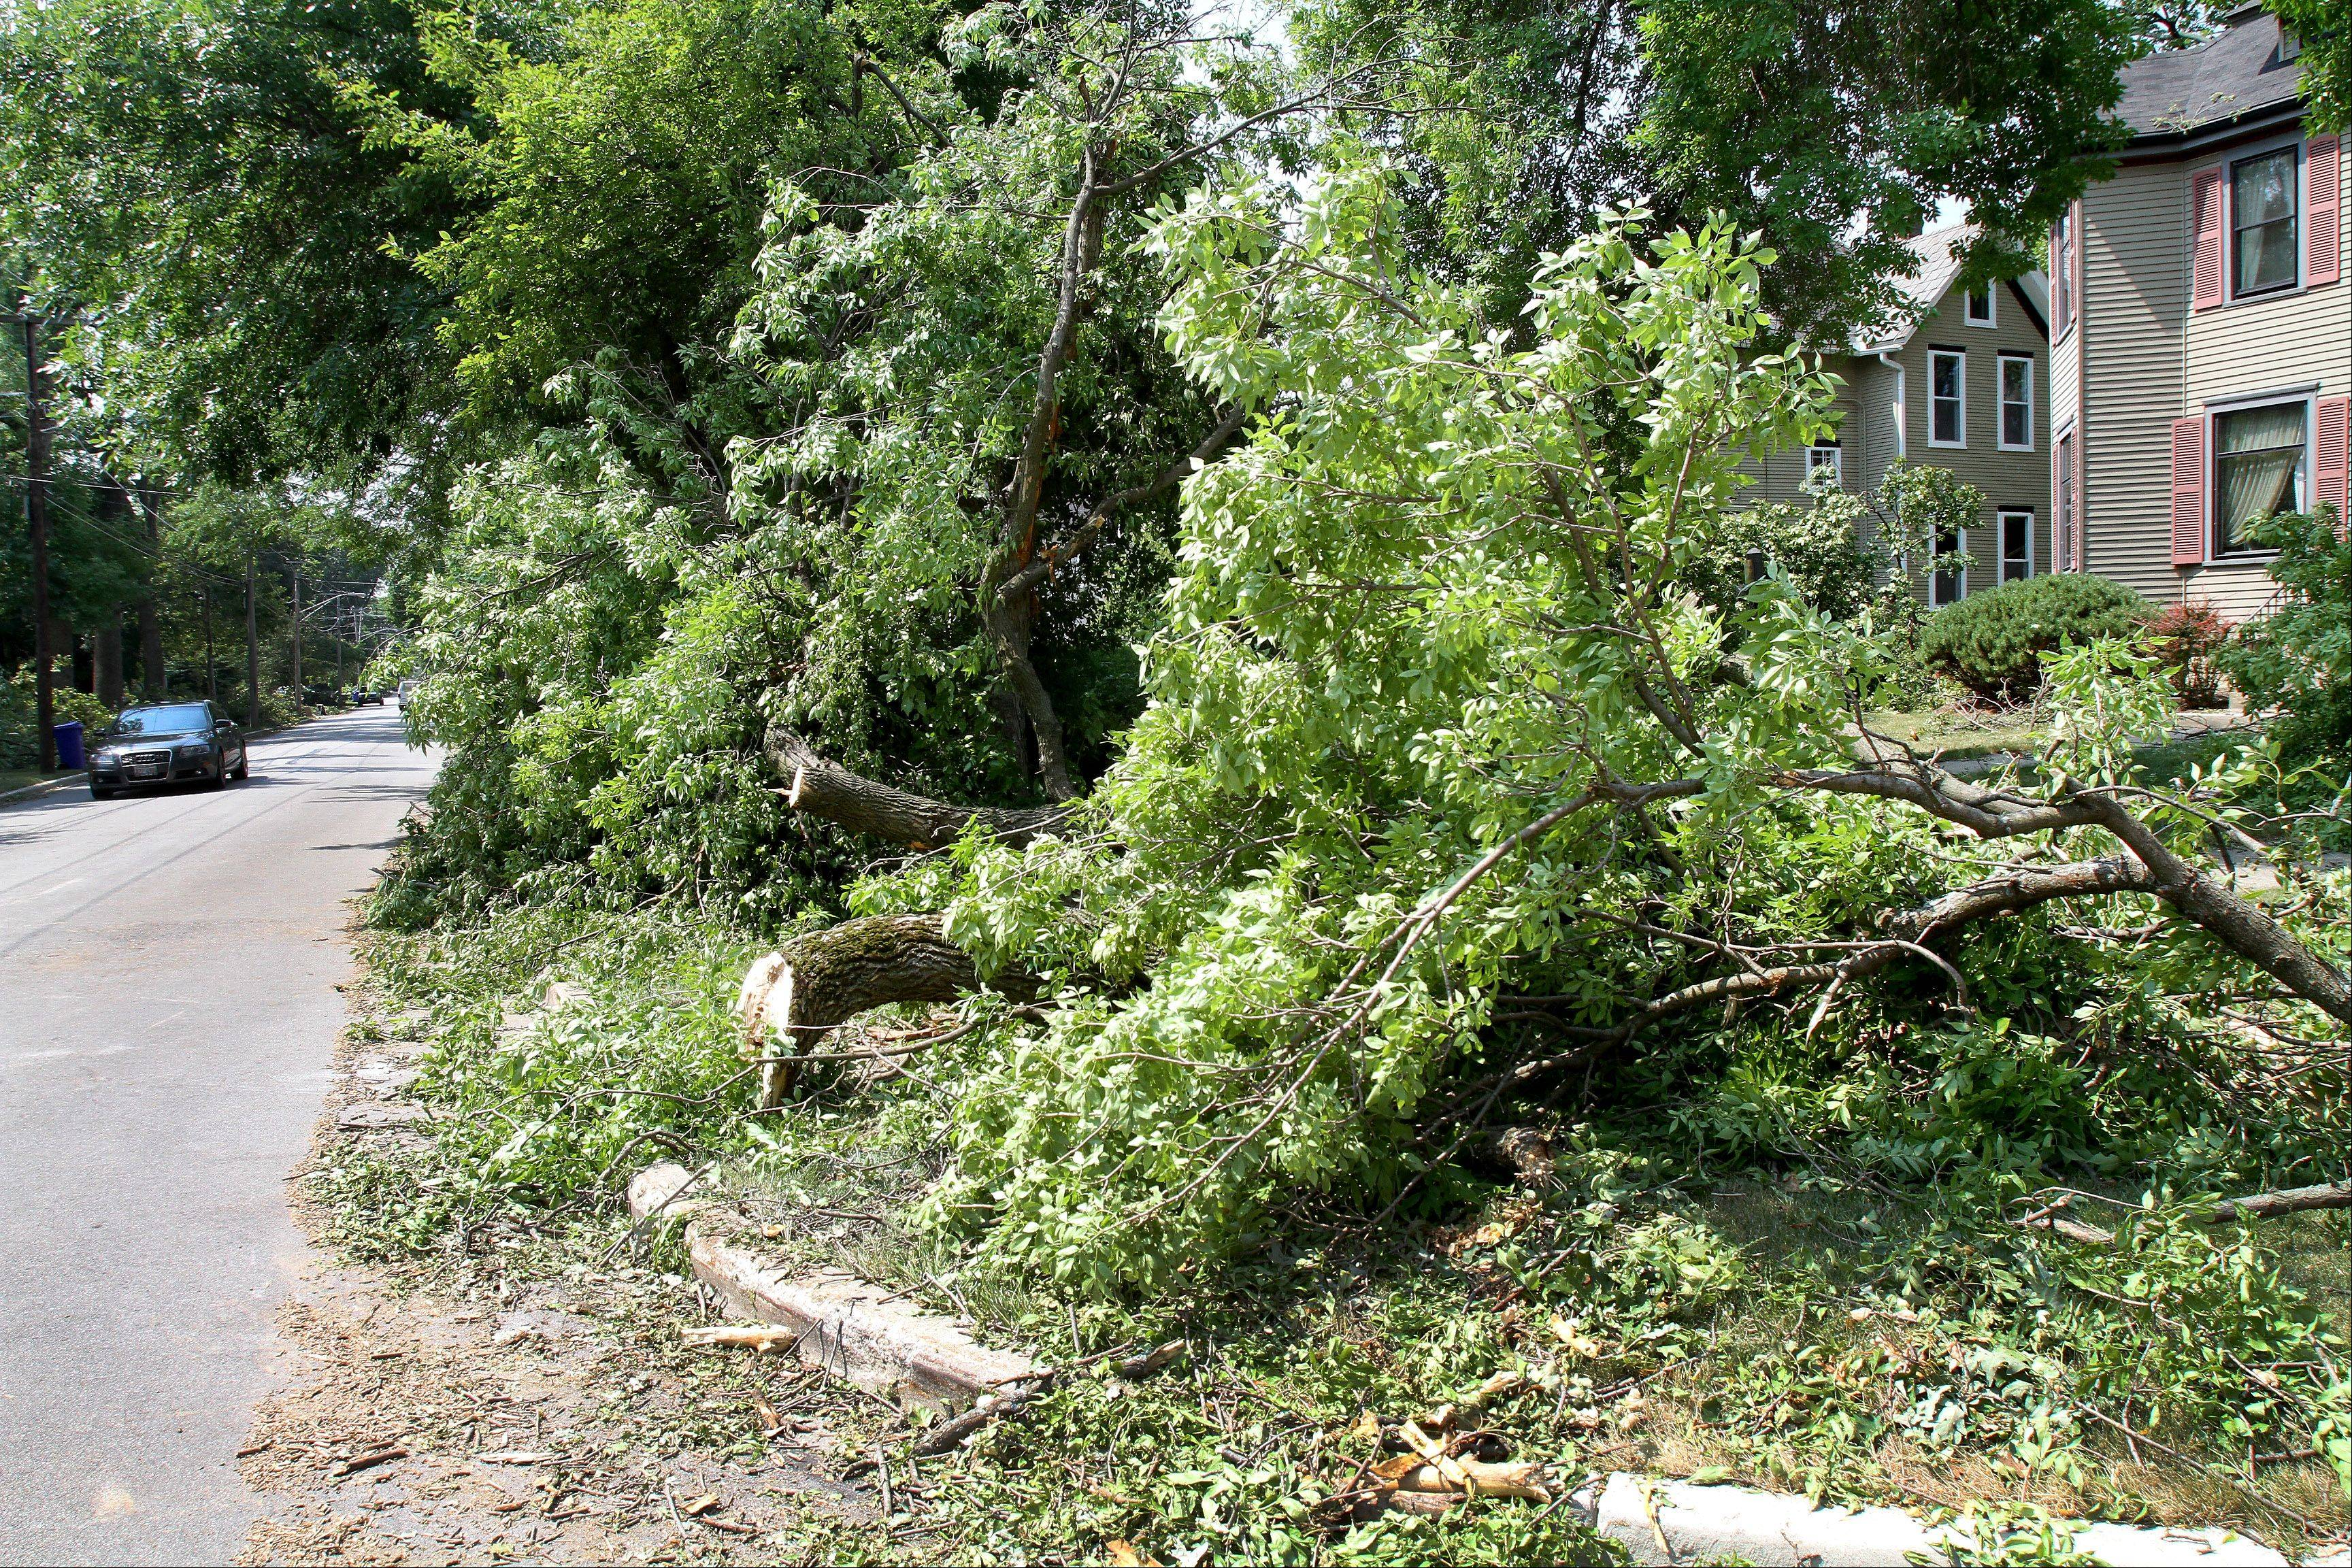 Sunday's storms knocked down trees throughout many towns in DuPage County.